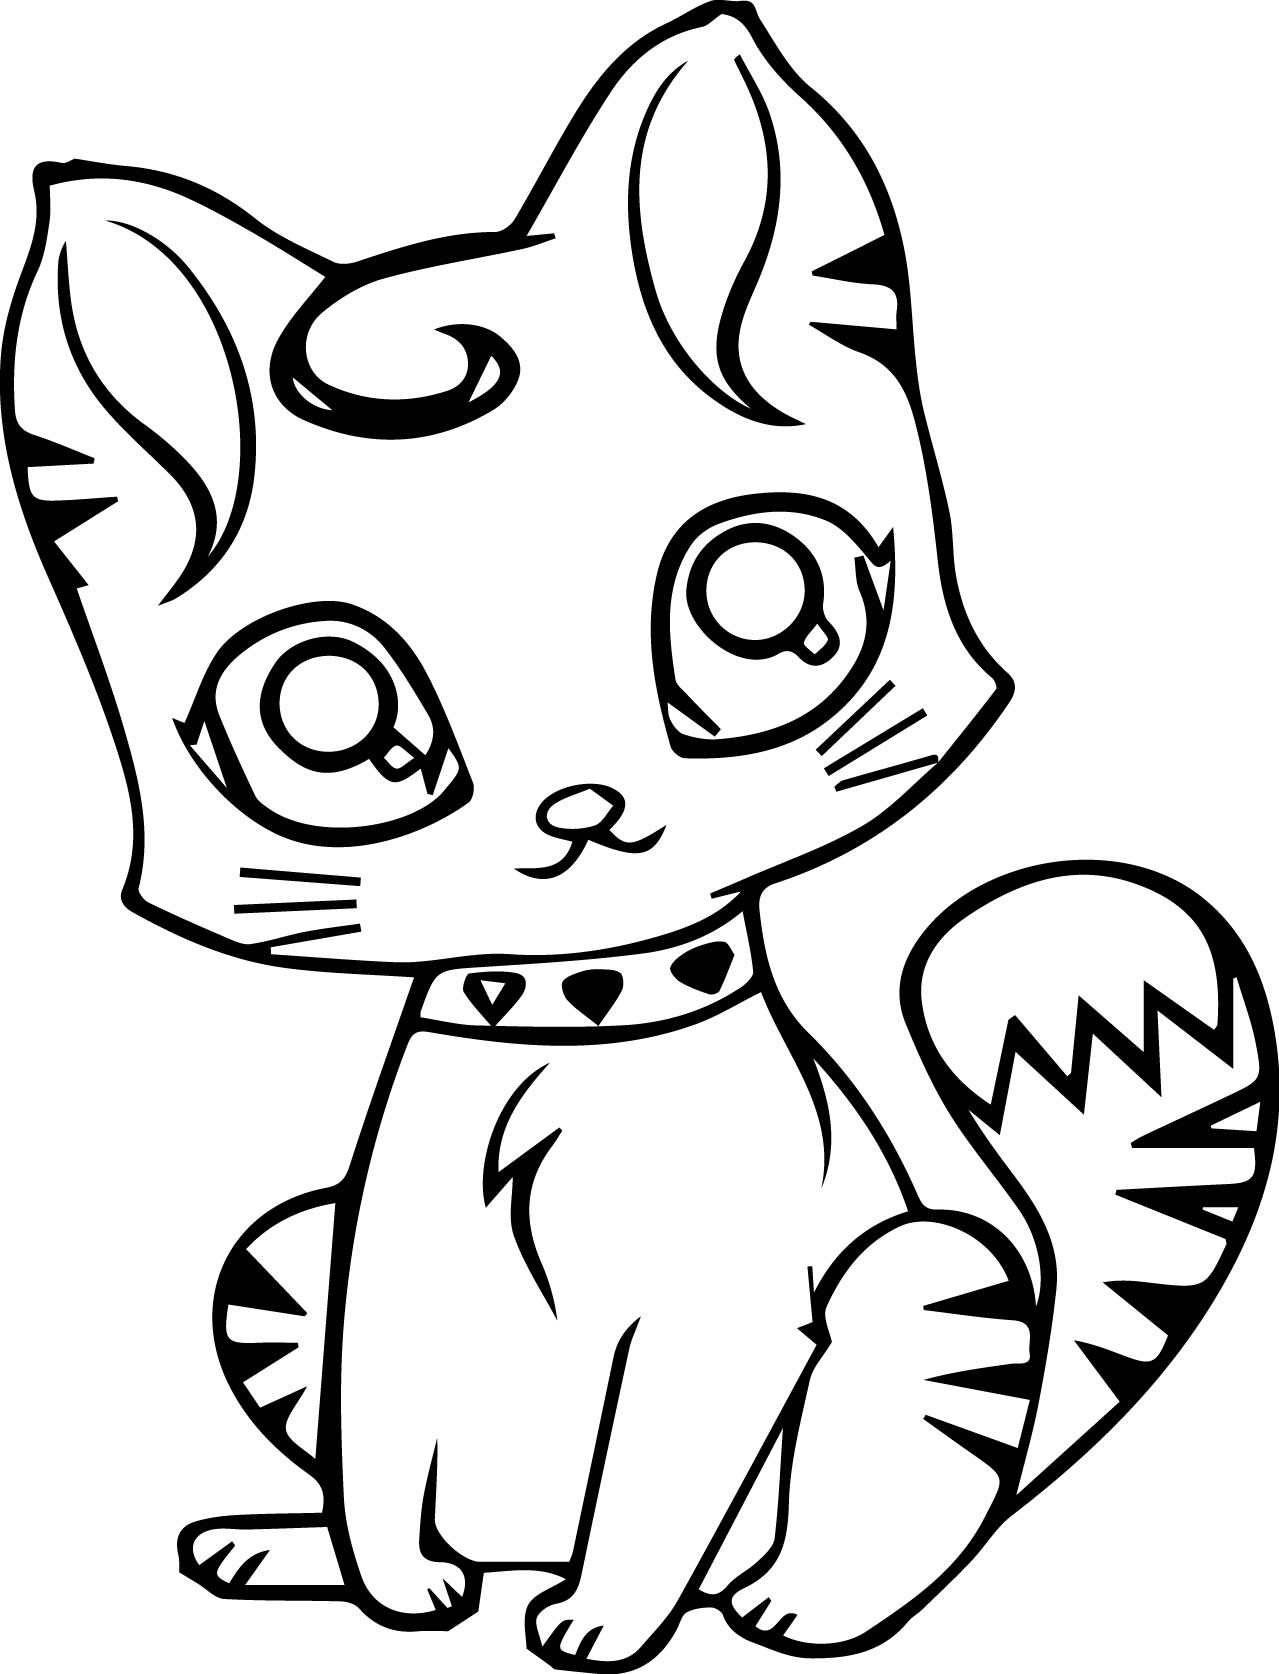 printable cats free printable cat coloring pages for kids cats printable 1 1